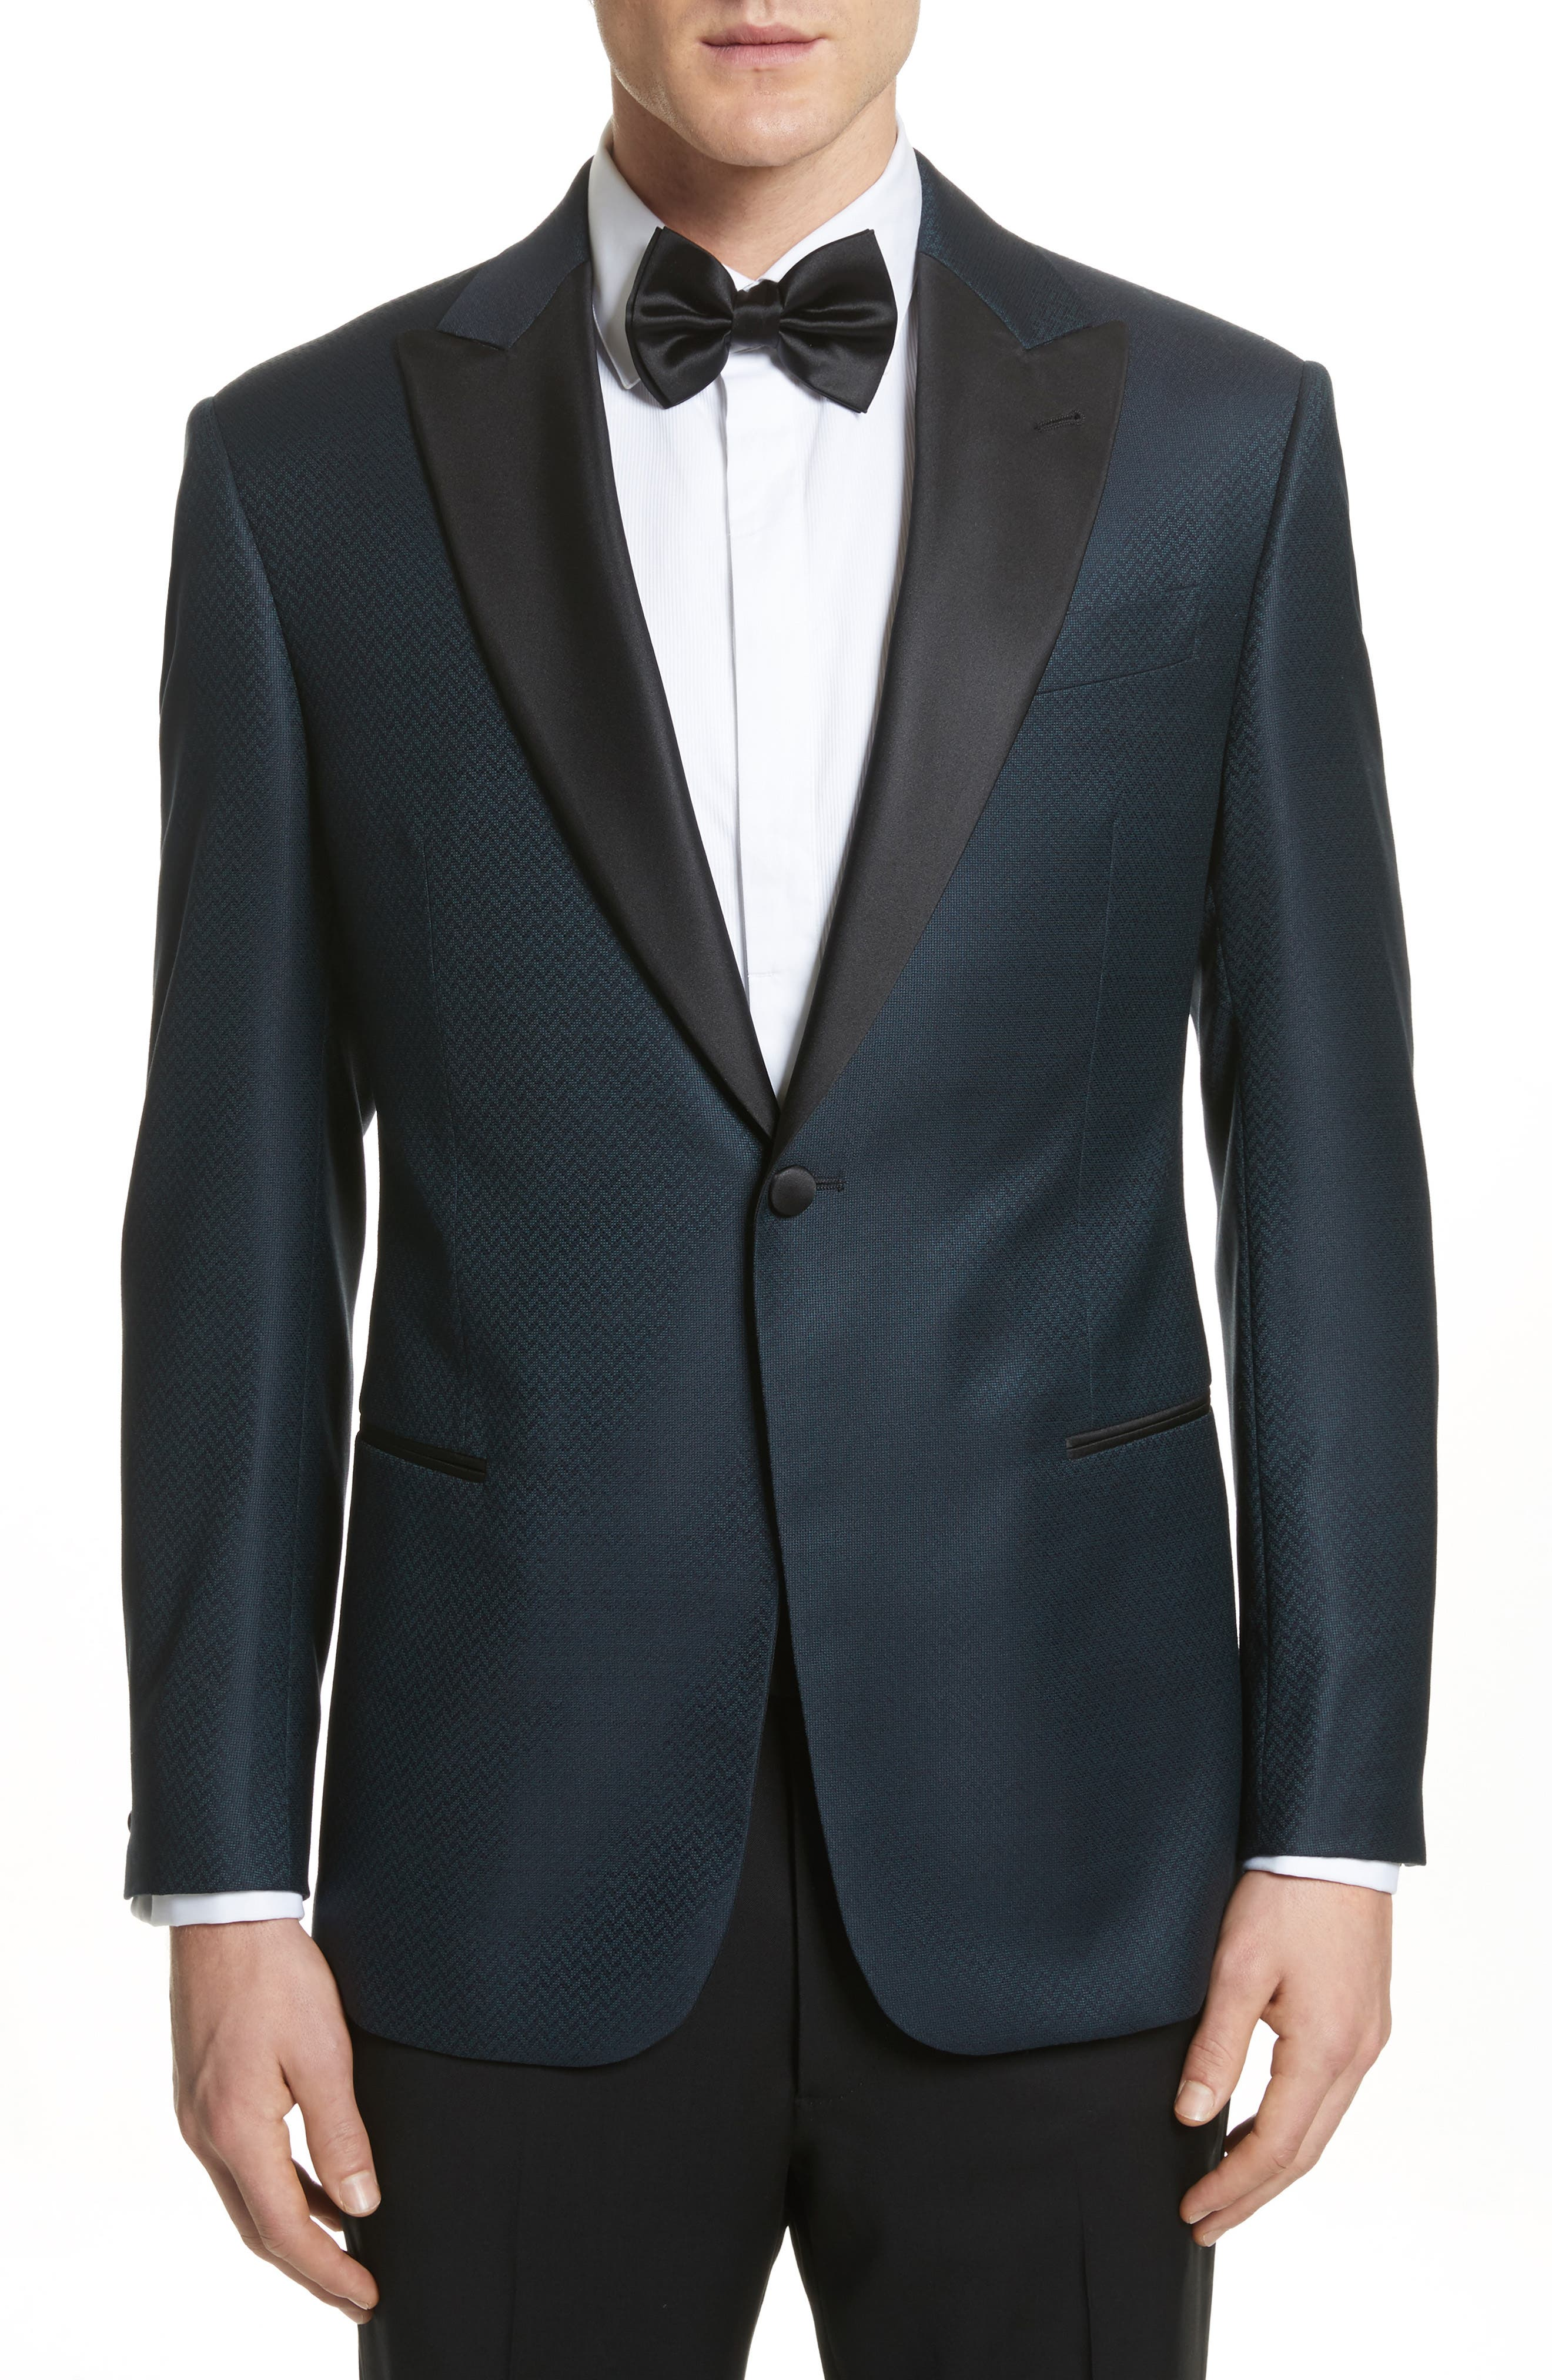 G-Line Trim Fit Wool Dinner Jacket,                             Main thumbnail 1, color,                             459